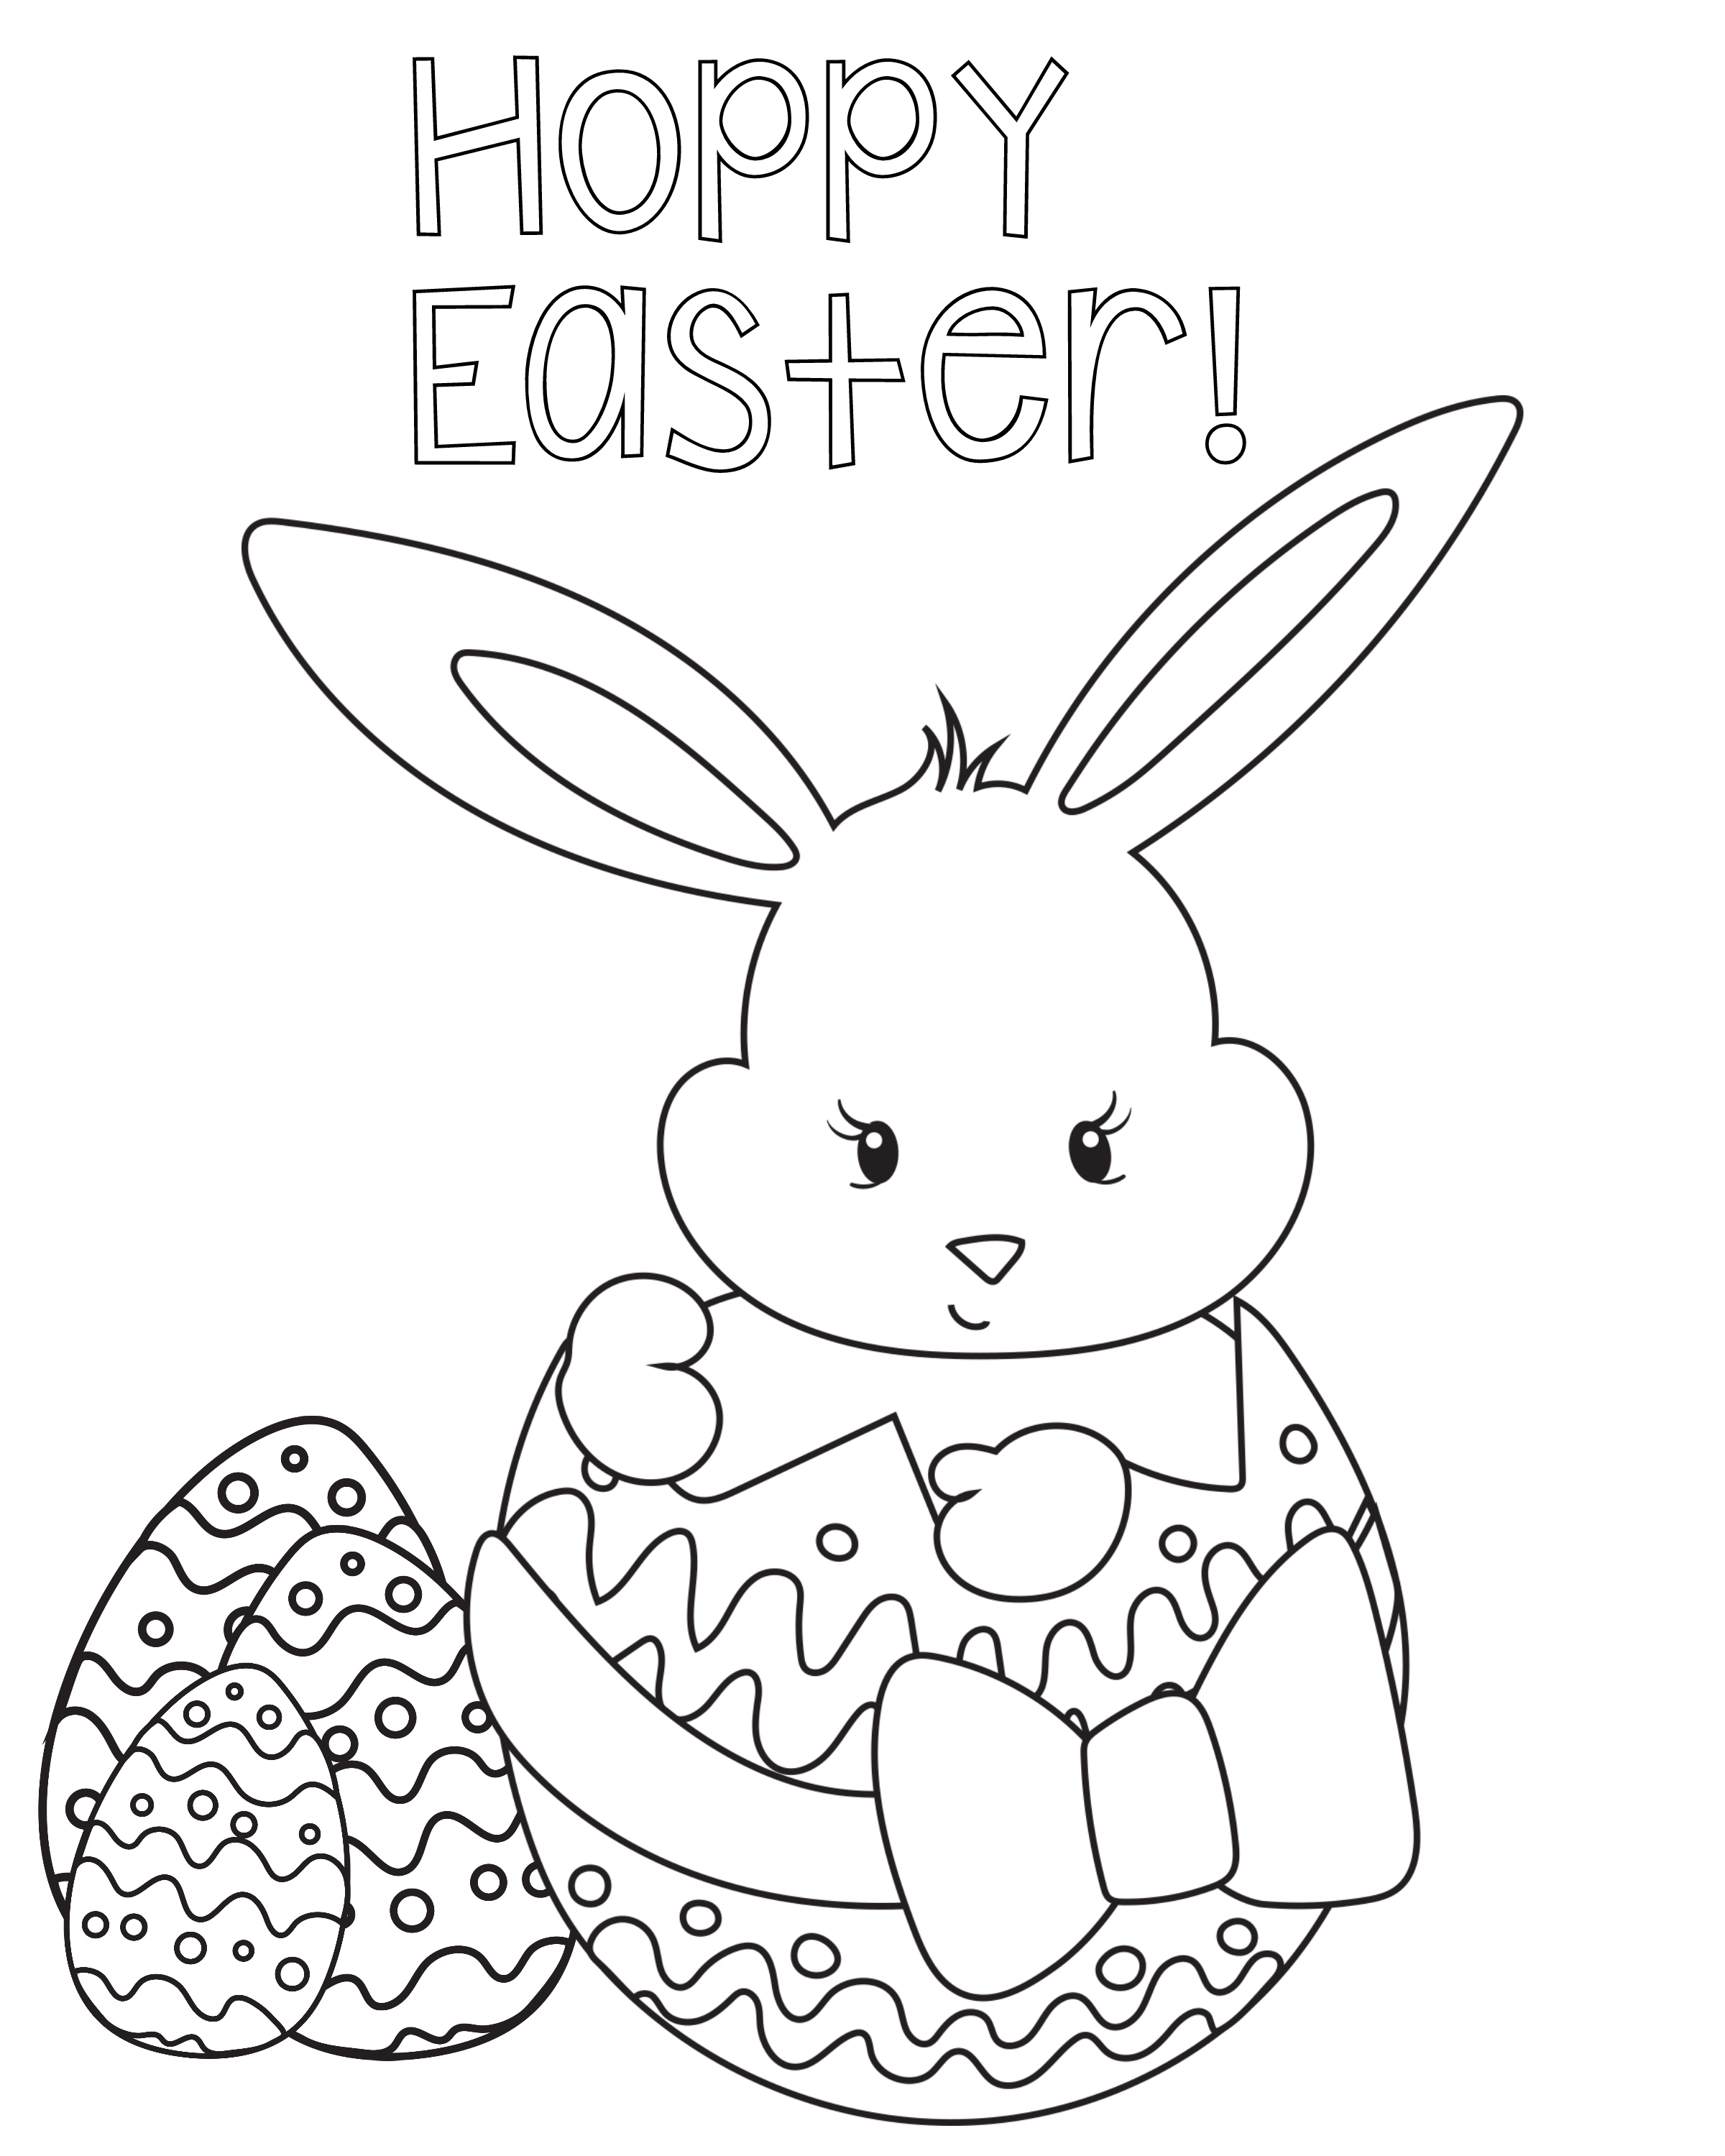 Easter coloring pages for kids crazy little projects for Easter coloring pages for boys